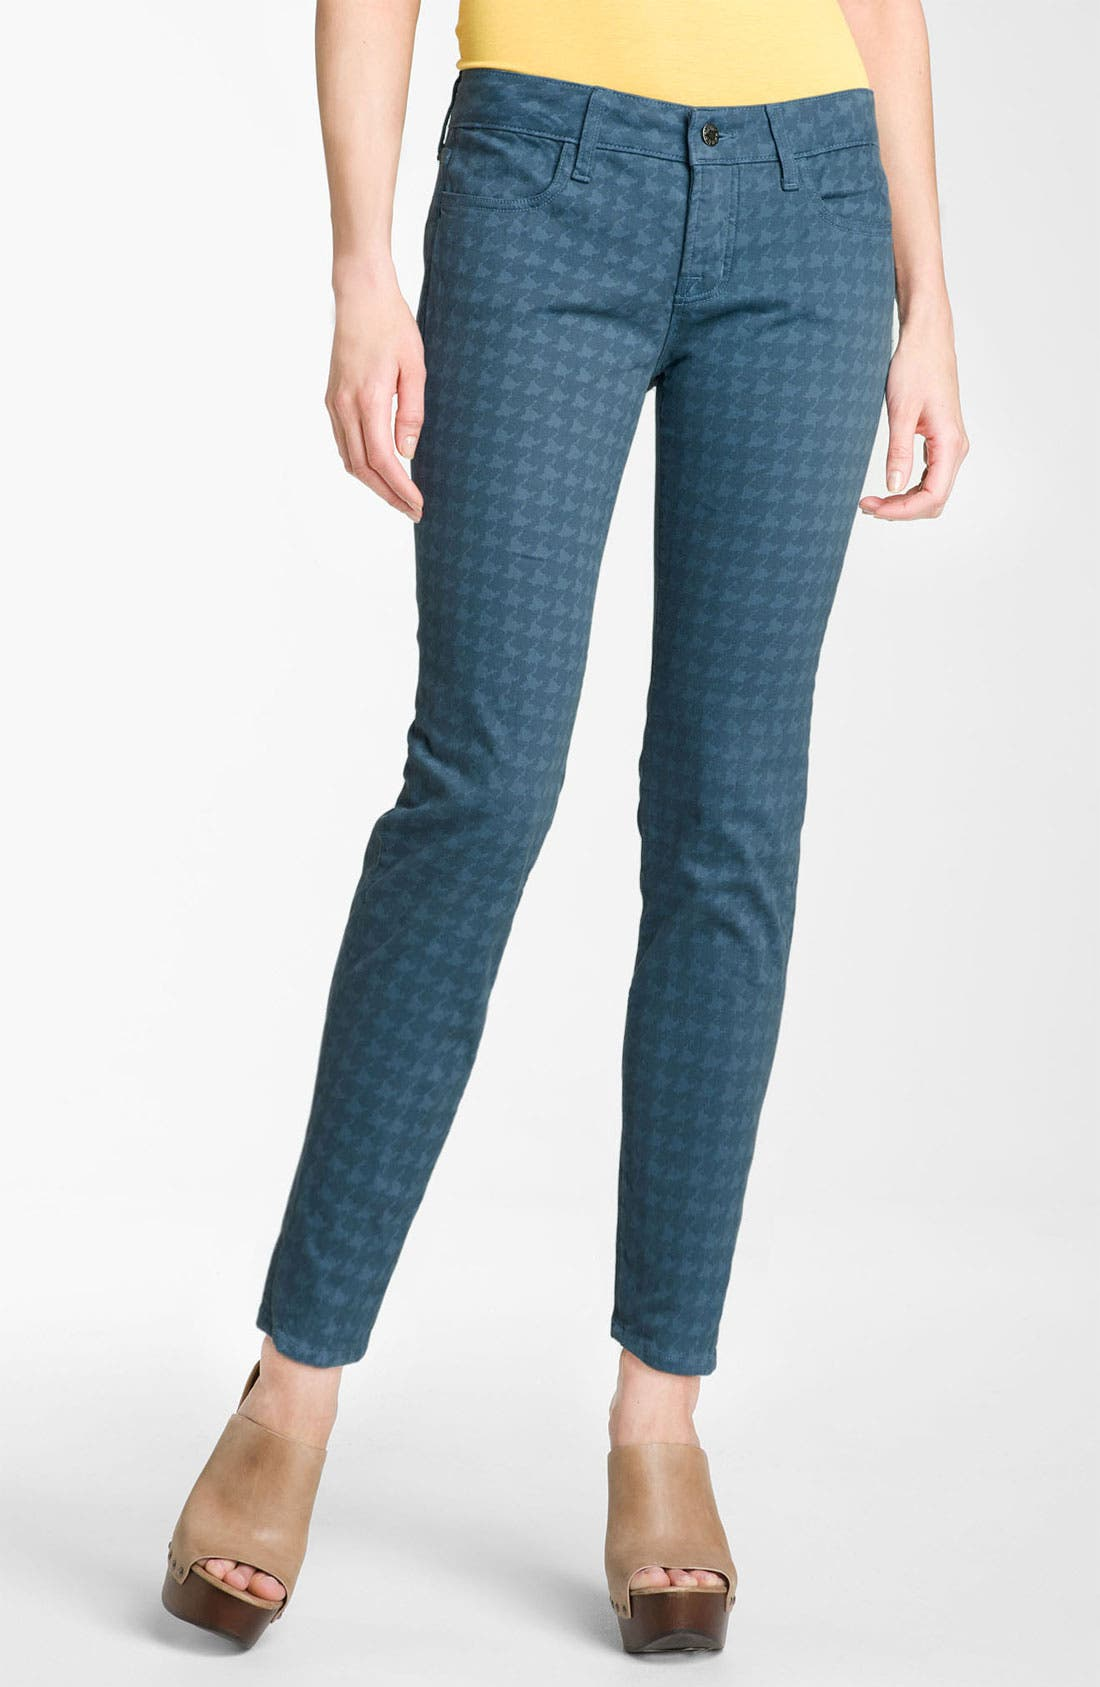 Alternate Image 1 Selected - Blue Essence Houndstooth Twill Ankle Jeans (Petite)